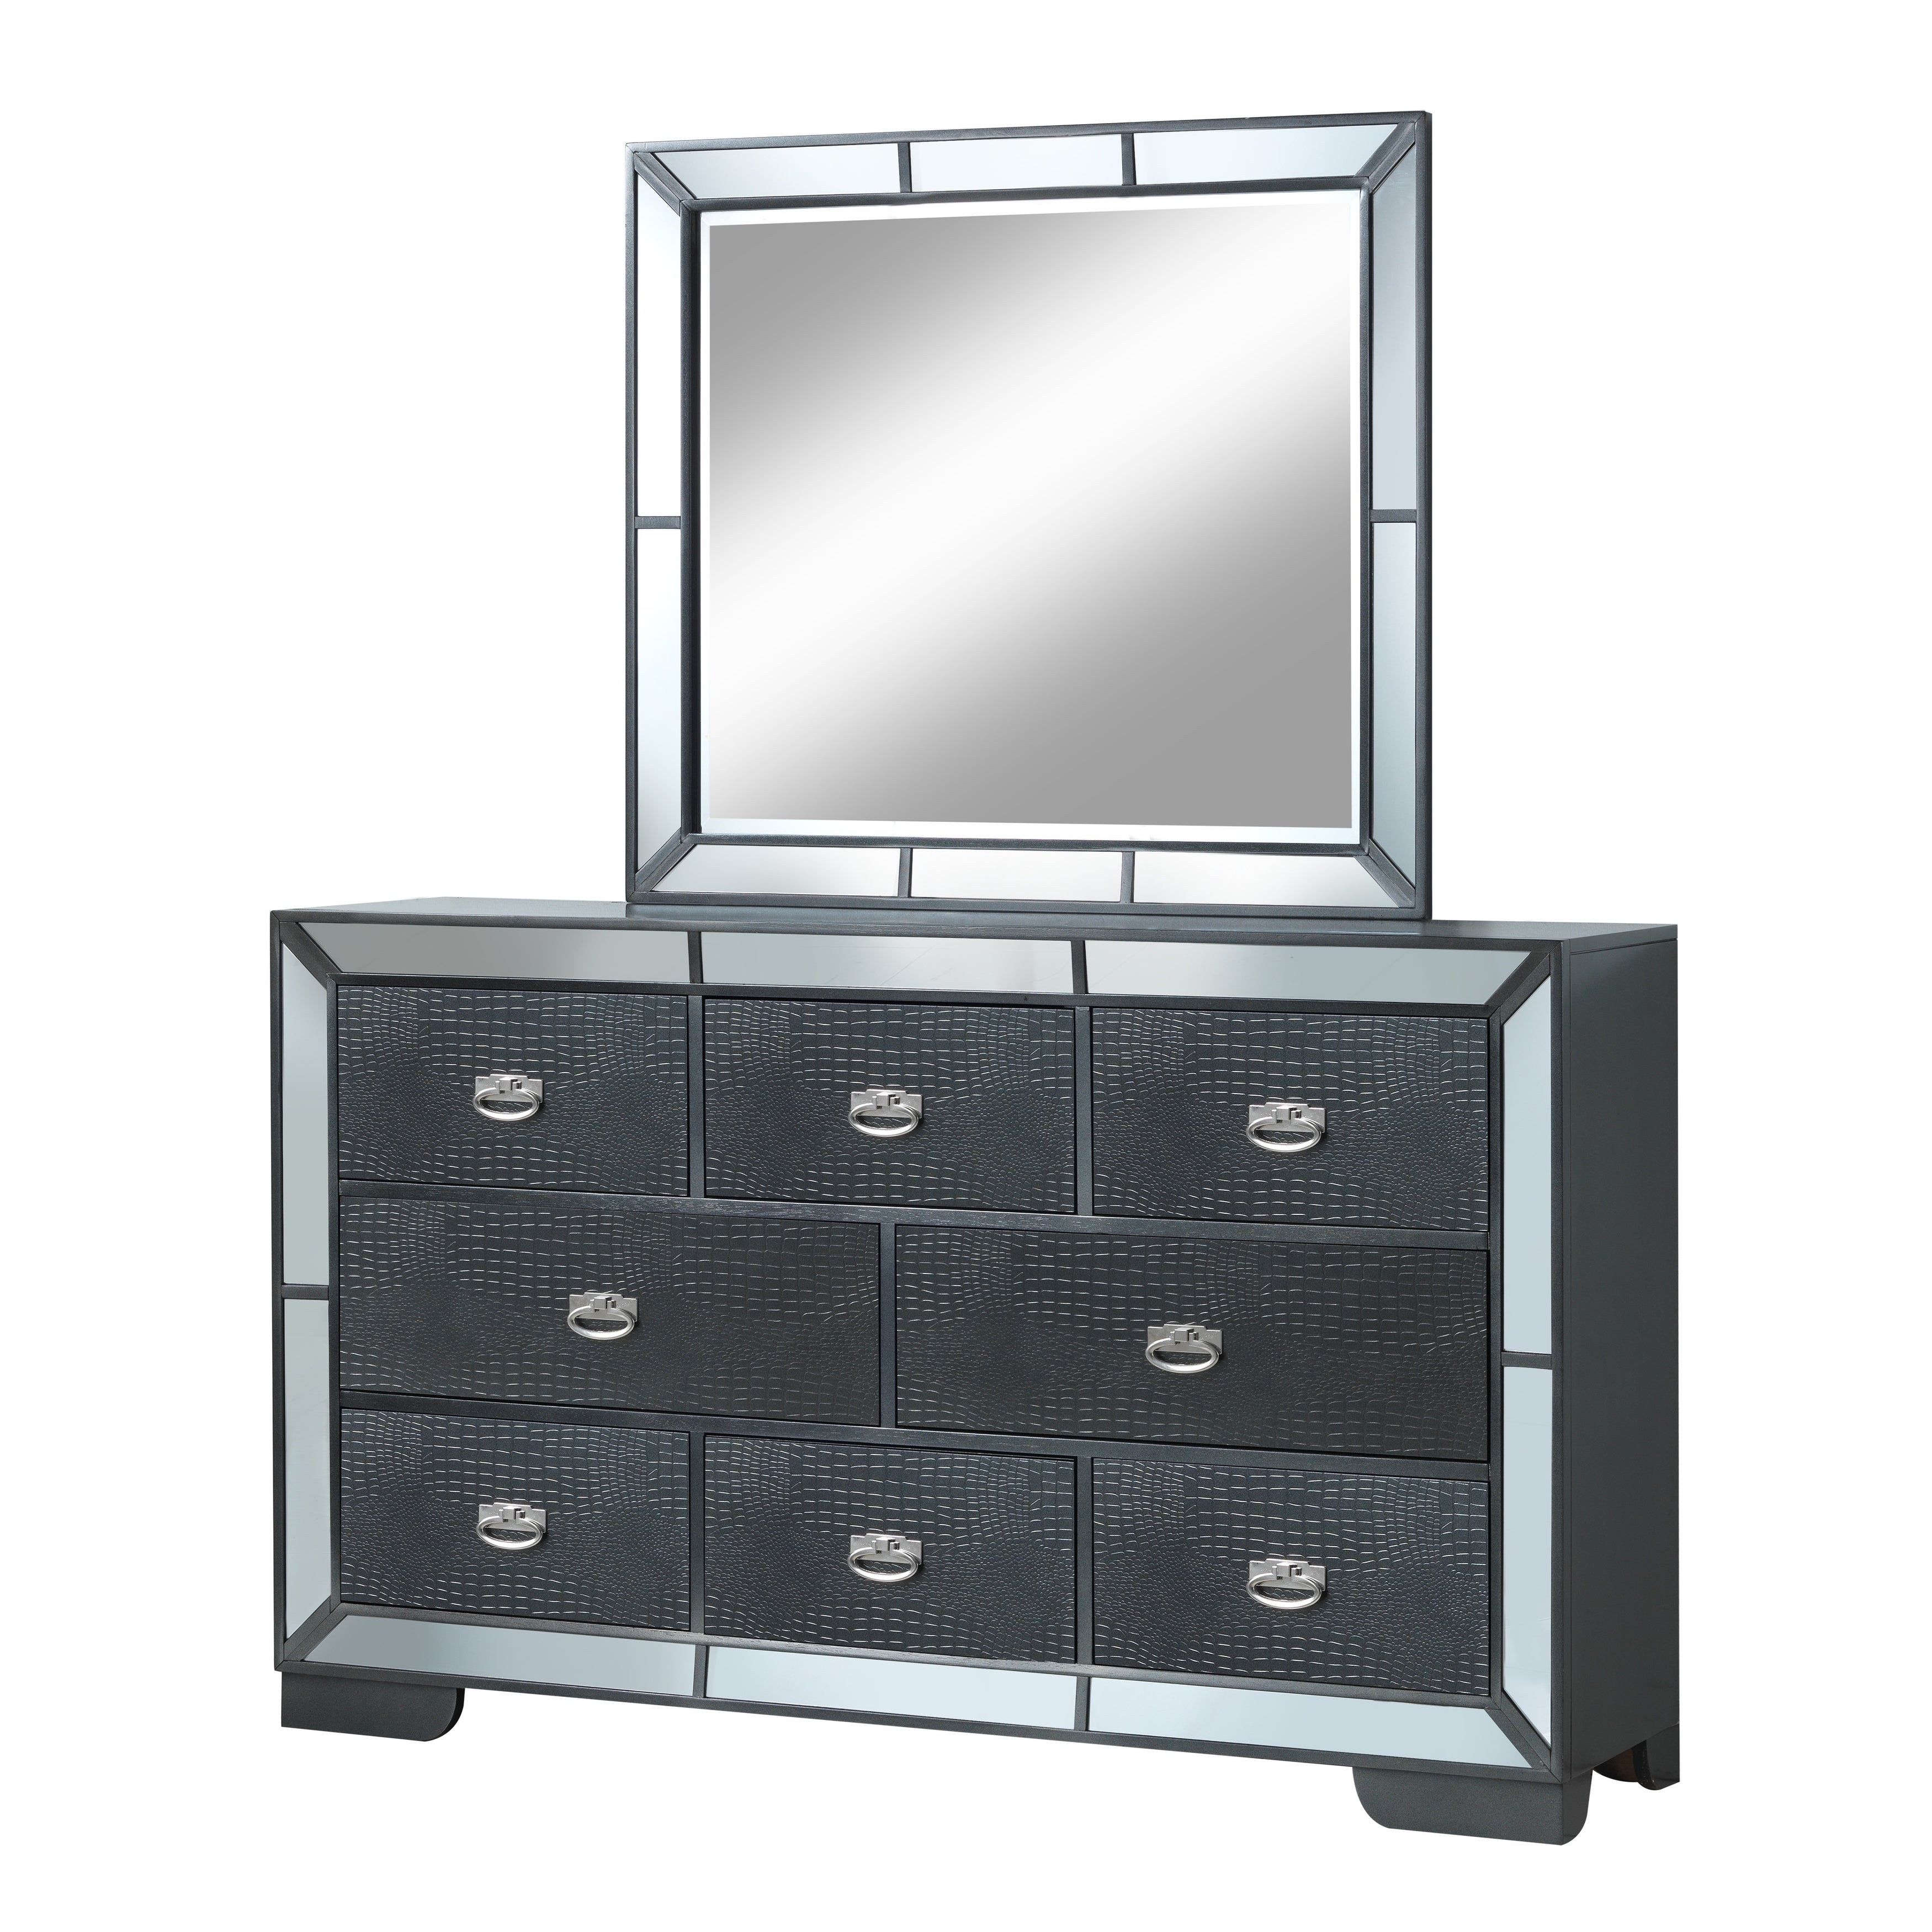 cottagetown over product br black cottage colors mirror town image with drs to dressers roll cheap dresser zoom